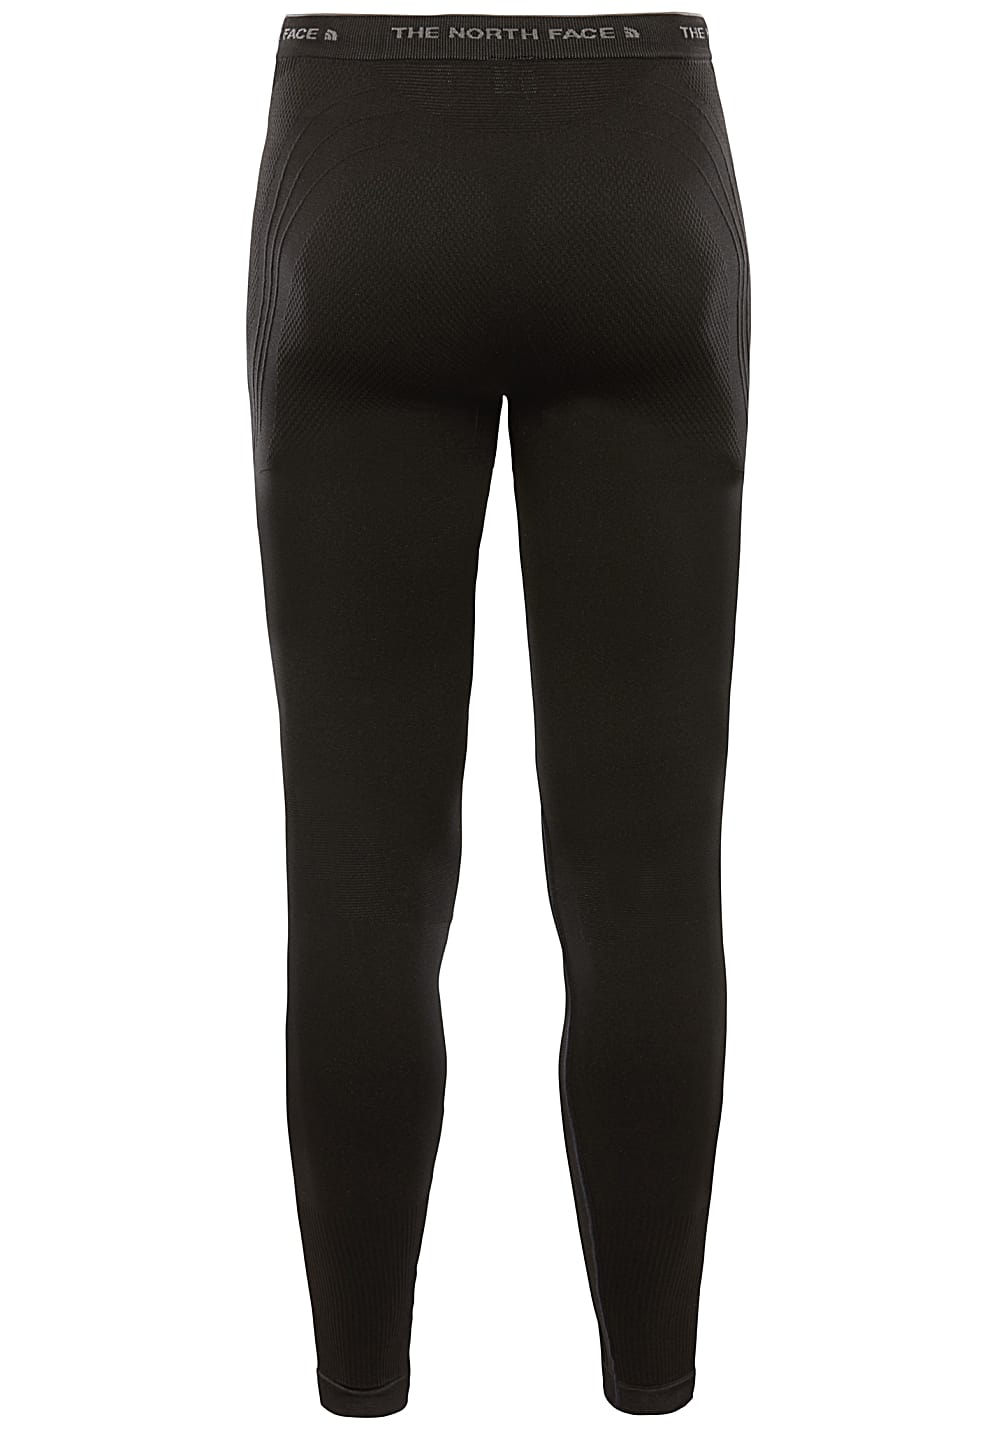 7d9890c6c THE NORTH FACE Hybrid Tights - Thermal Underwear for Women - Black